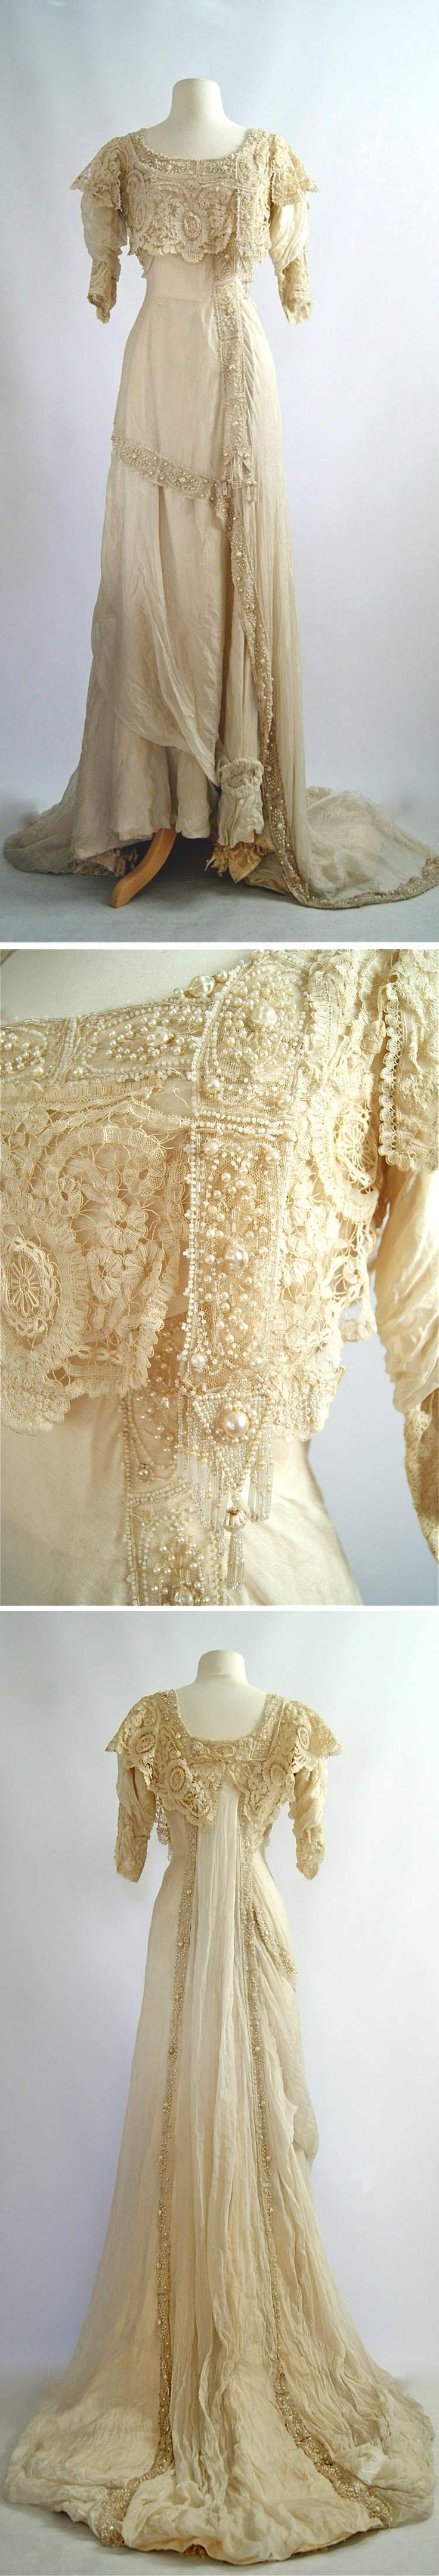 Evening gown ca. 1900s. Silk. Scoop neck trimmed with lace & beading around collar. Lace cascades down left side.